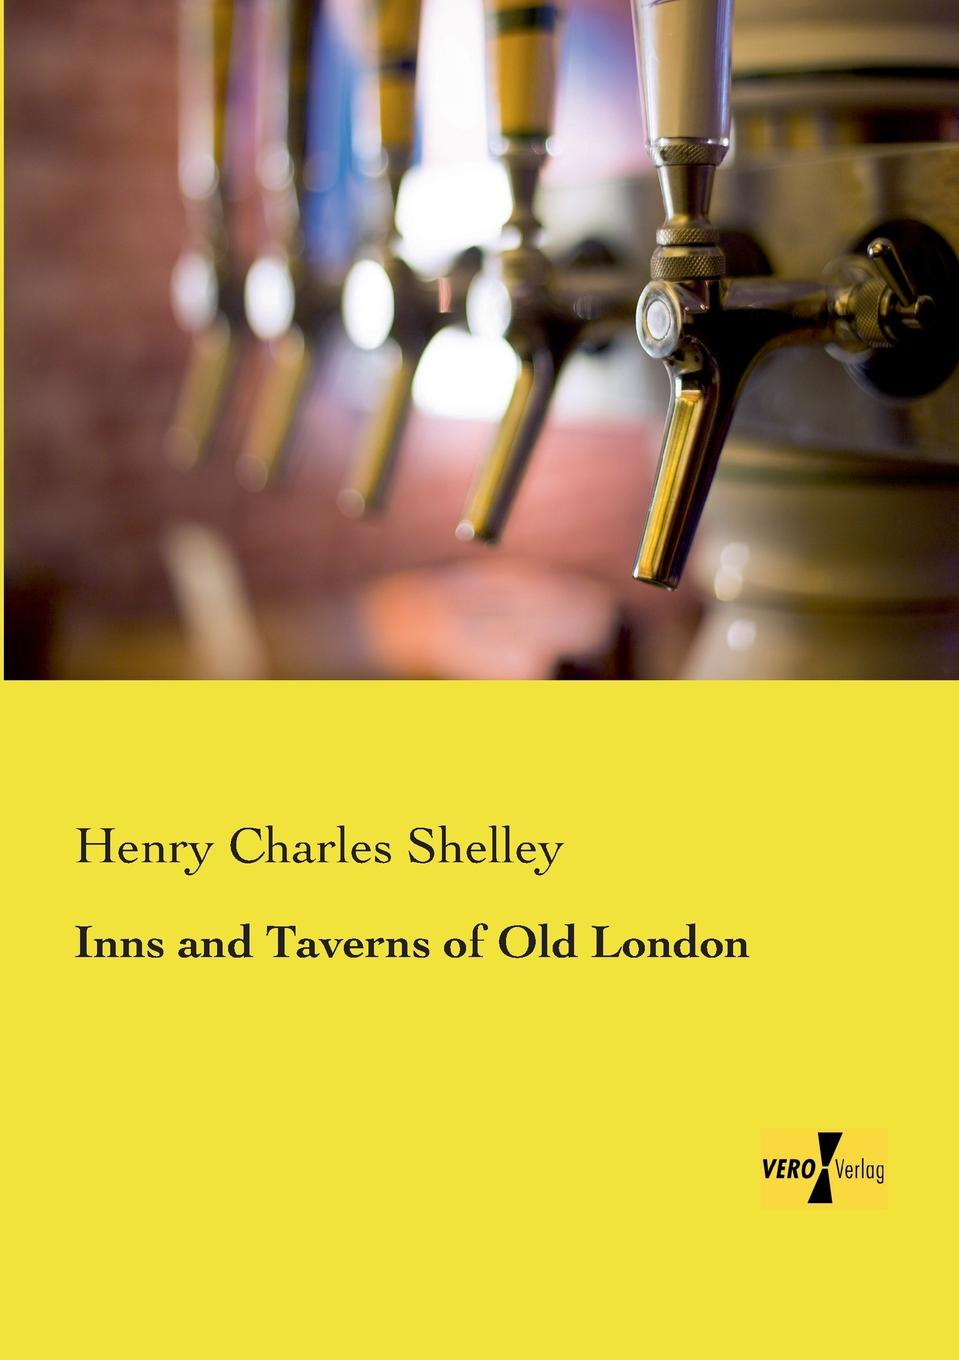 Henry Charles Shelley Inns and Taverns of Old London